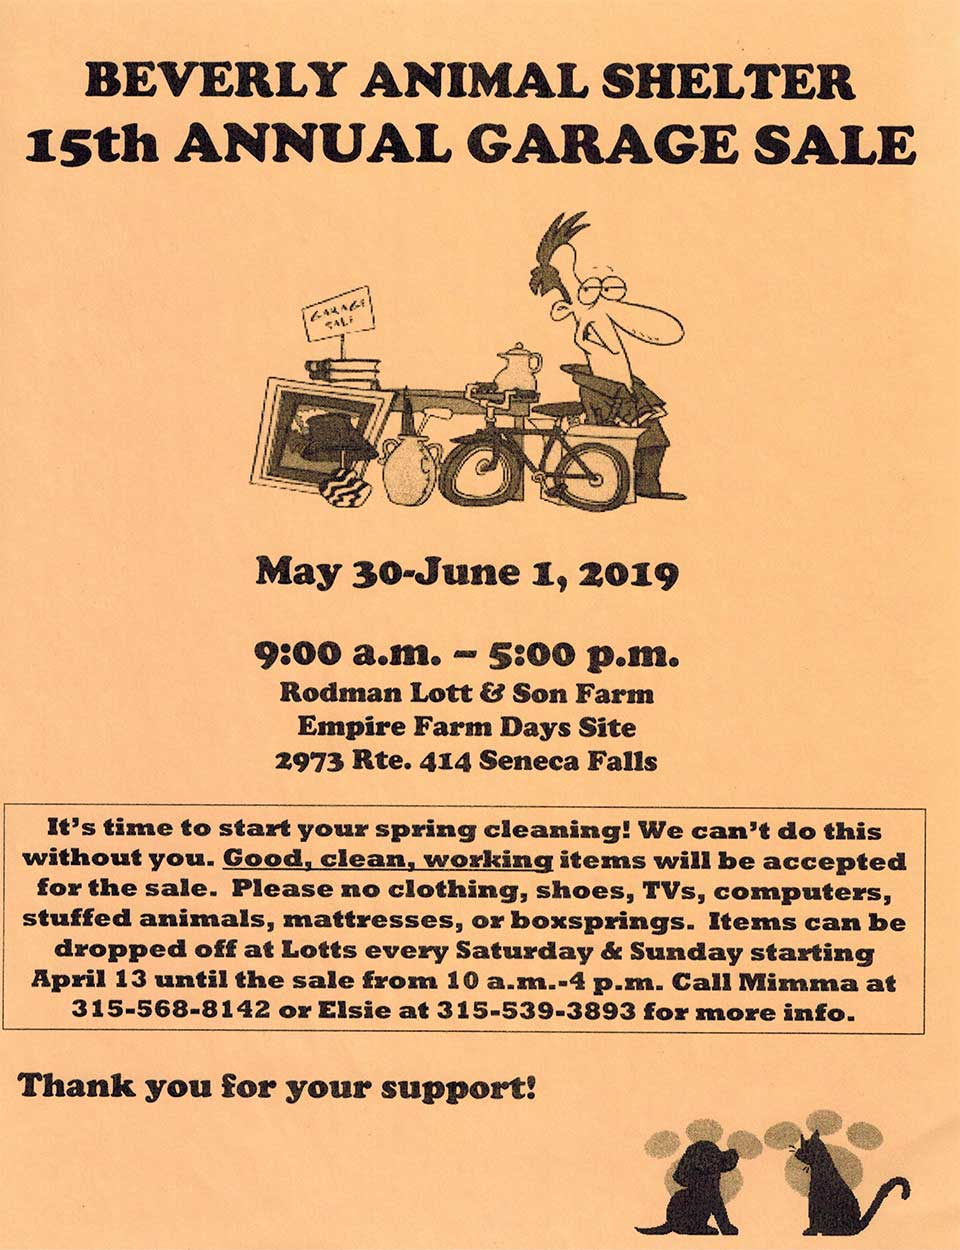 Beverly Animal Shelter Annual Garage Sale